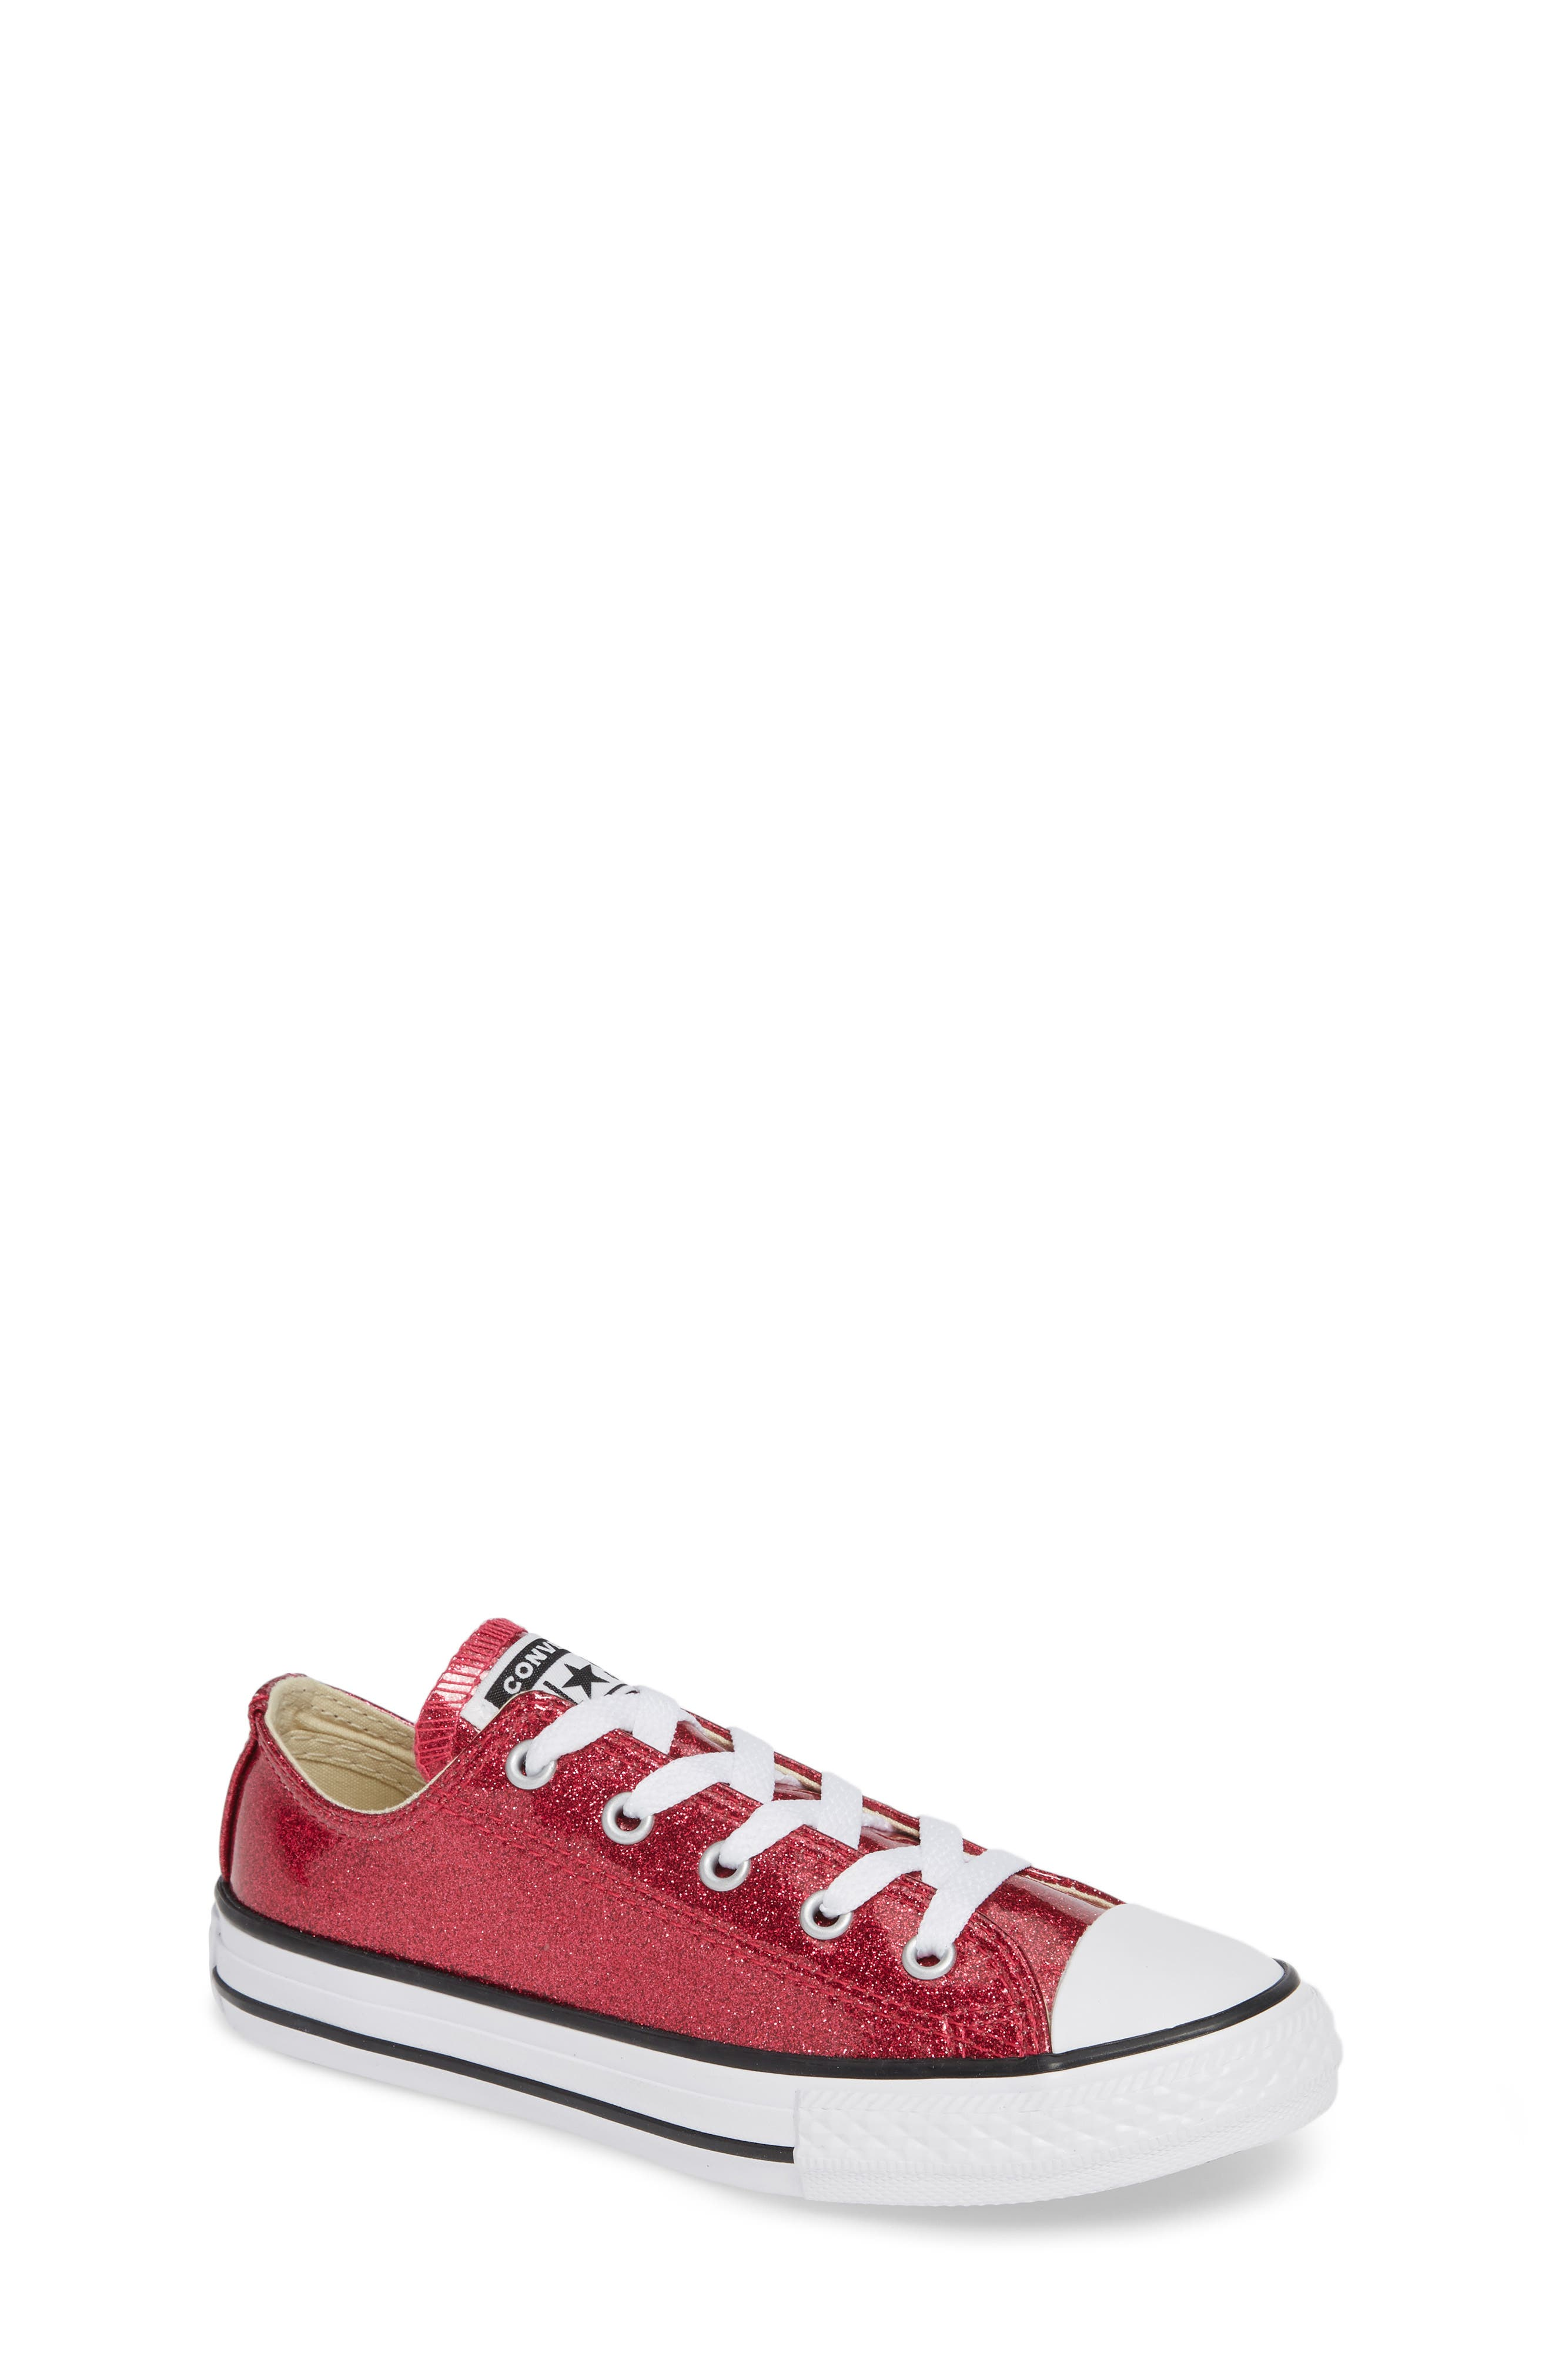 CONVERSE,                             All Star<sup>®</sup> Seasonal Glitter OX Low Top Sneaker,                             Main thumbnail 1, color,                             PINK POP